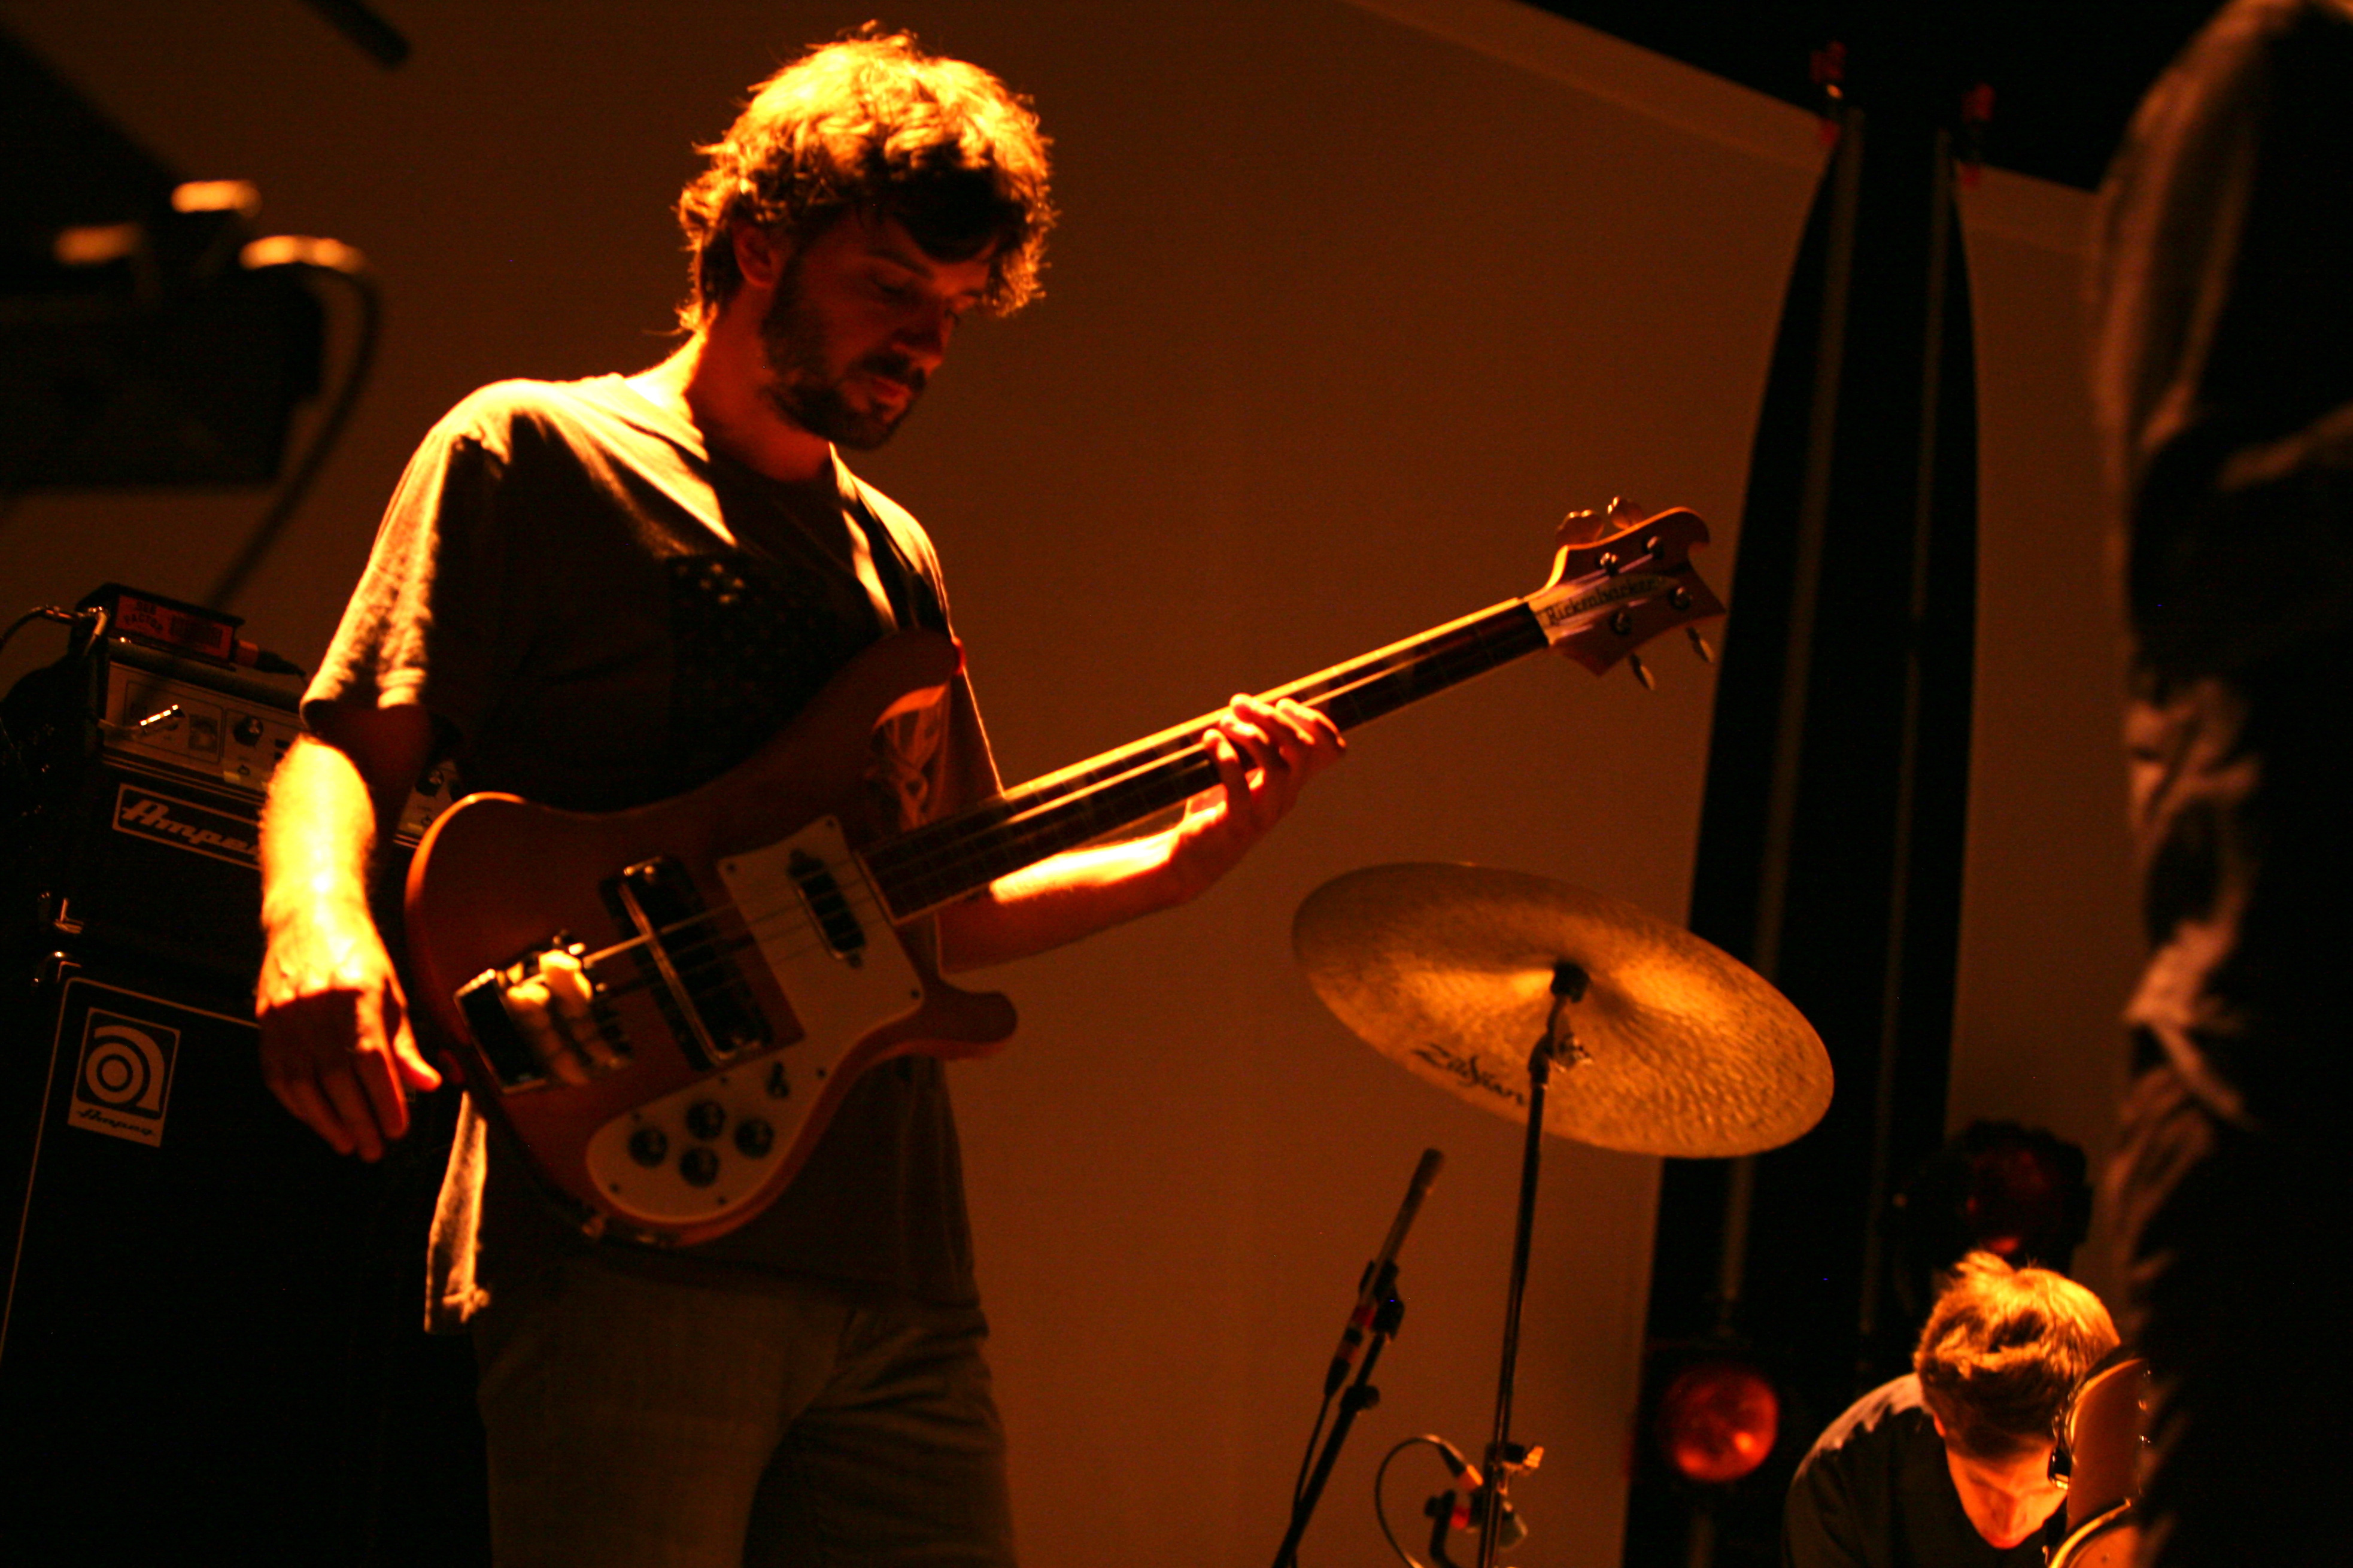 Dirty Projectors, performing live at the 9:30 Club, in Washington, D.C.